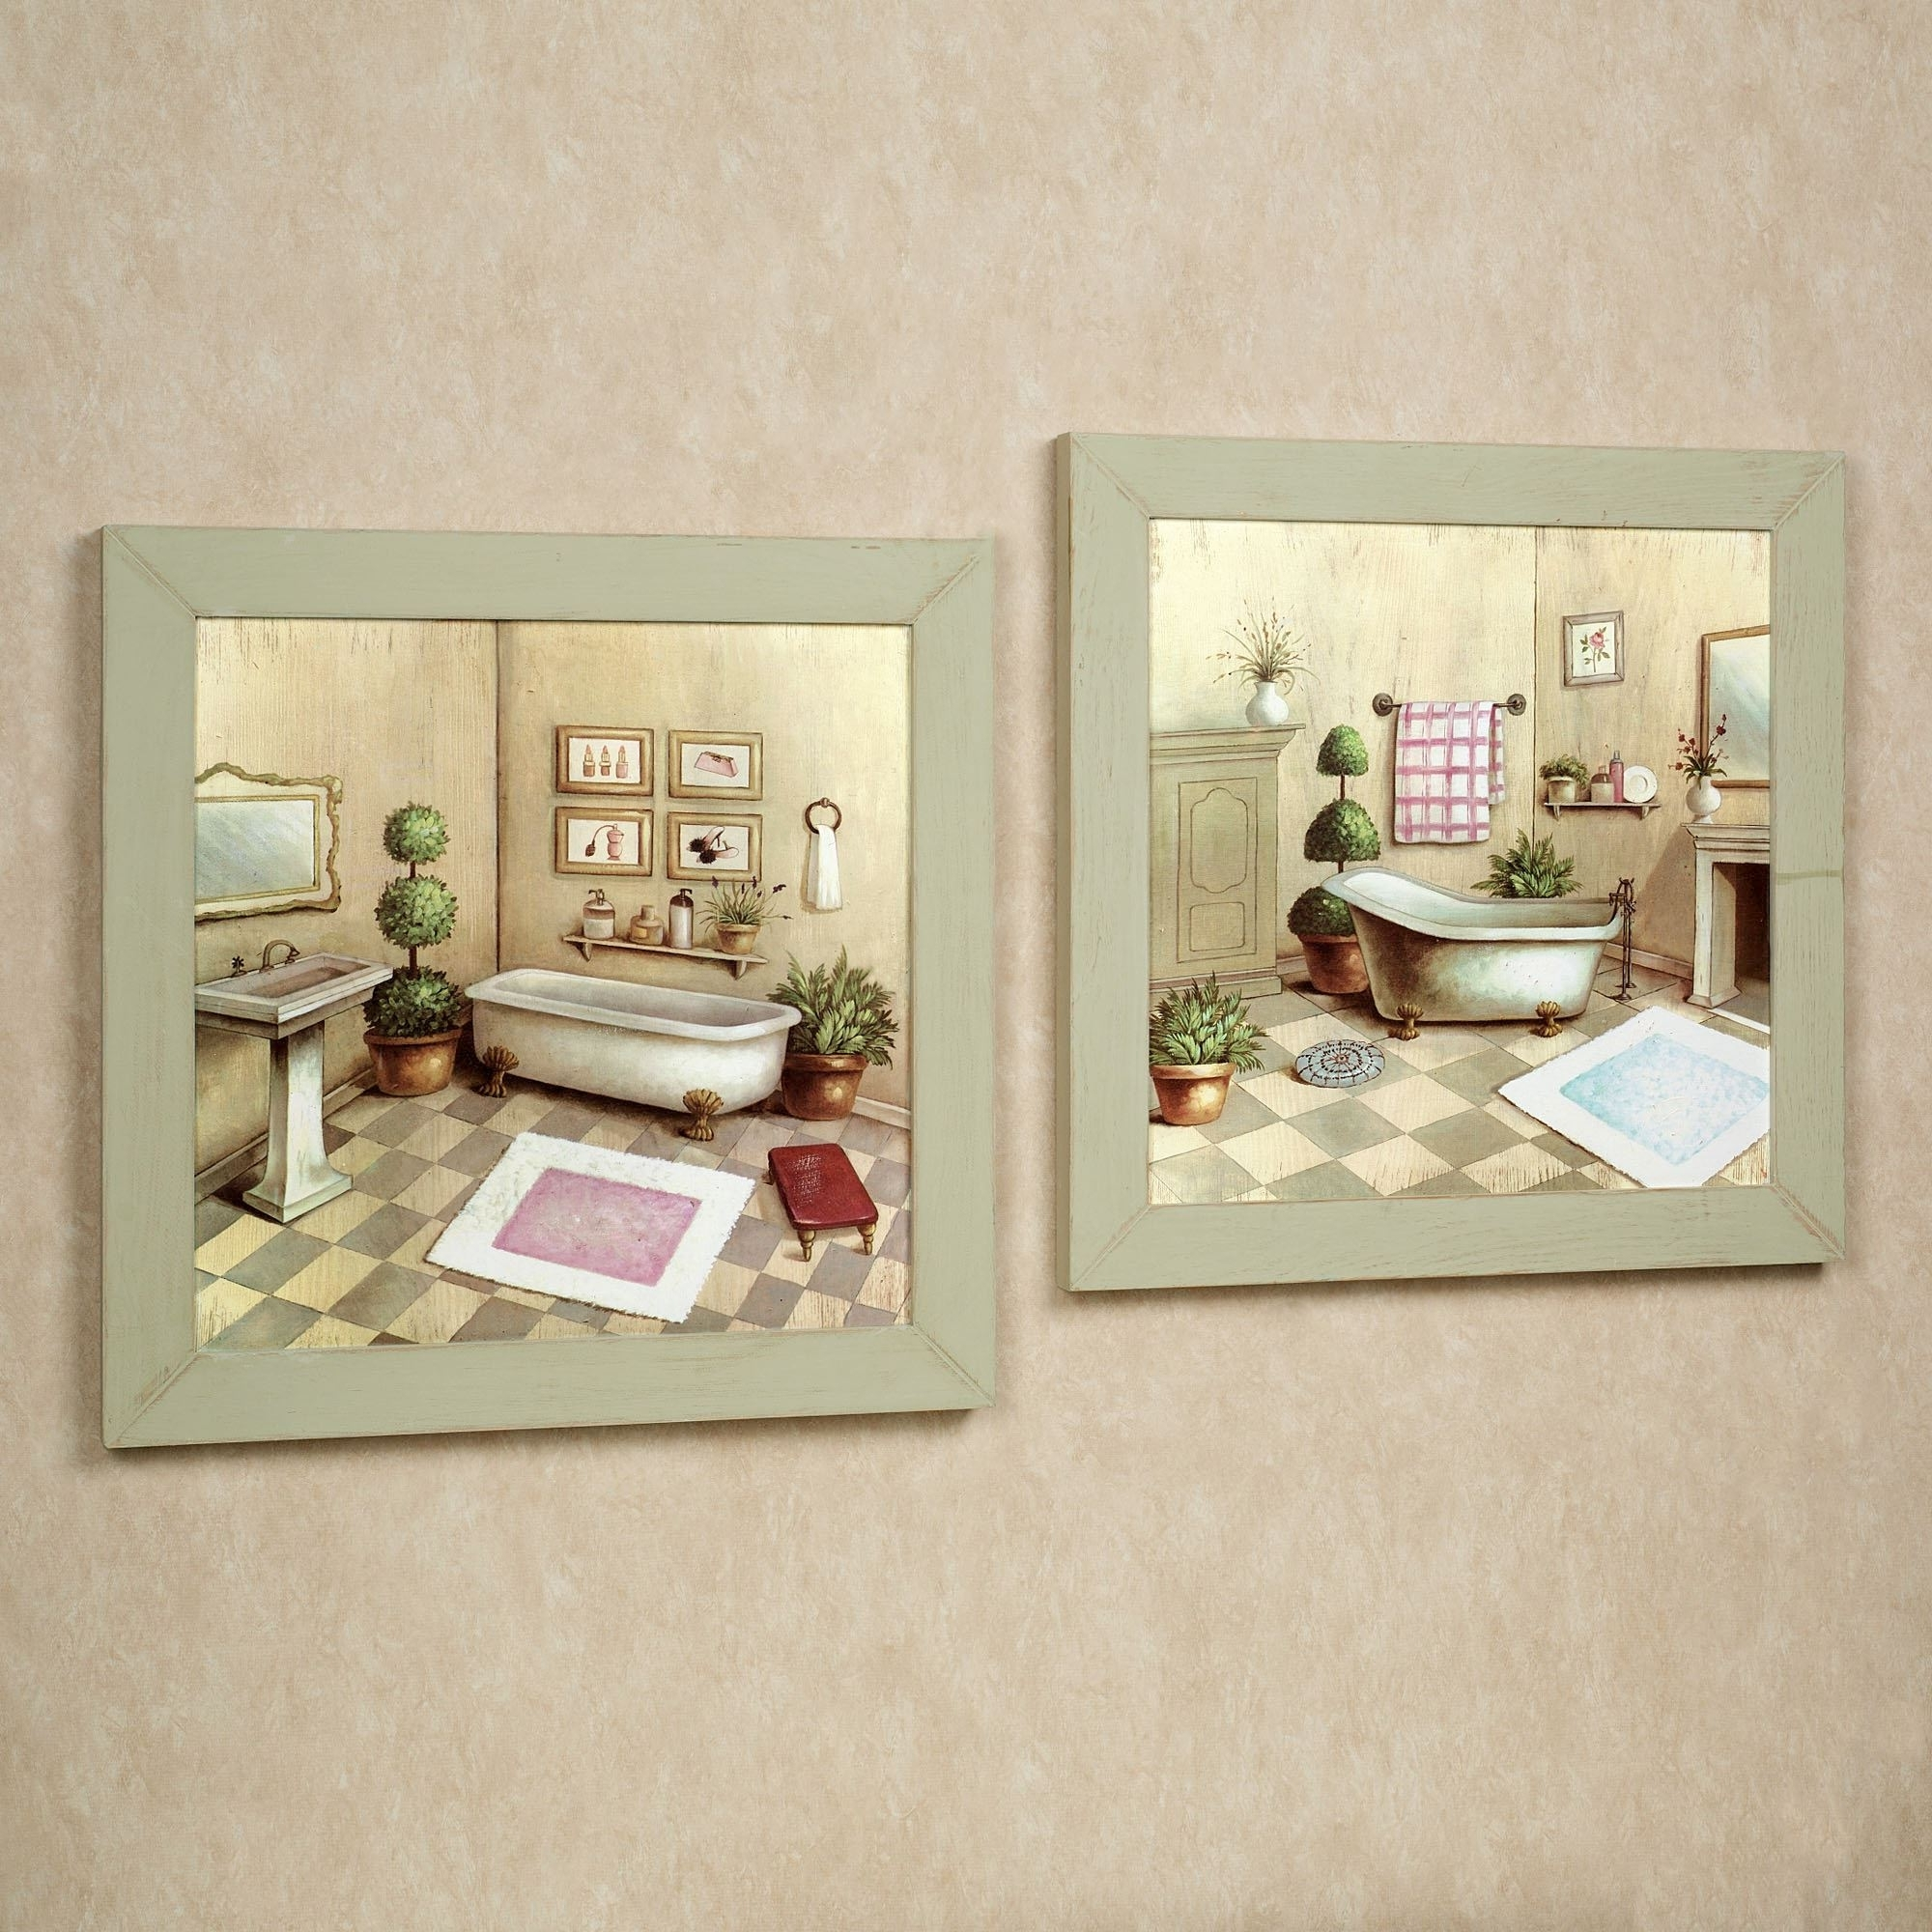 Most Recently Released Bathroom Wall Hangings Within Wall Art: Simple Decoration Framed Bathroom Wall Art Pictures For (View 8 of 15)